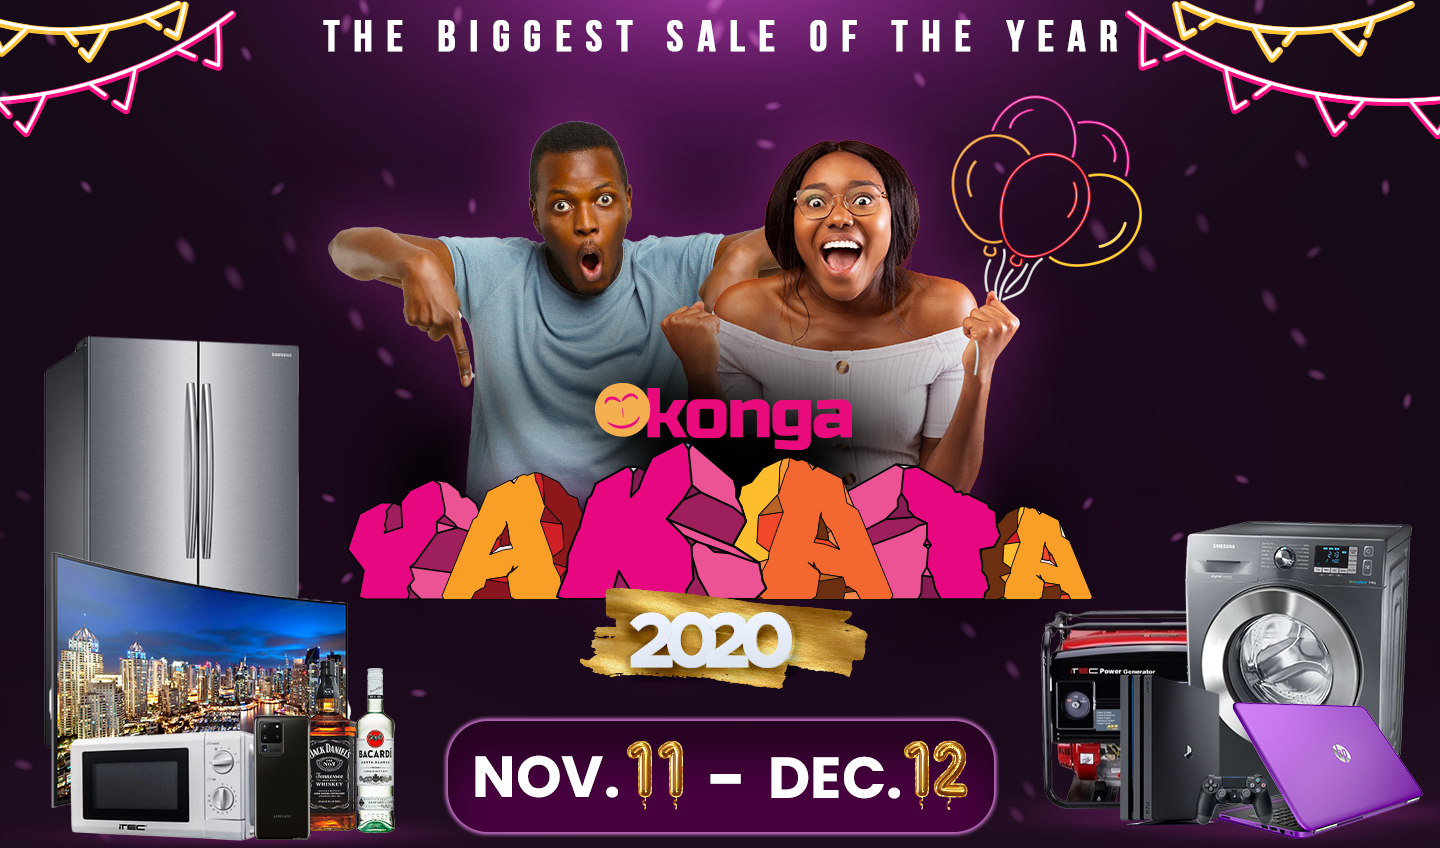 Konga Black Friday 2020 deals